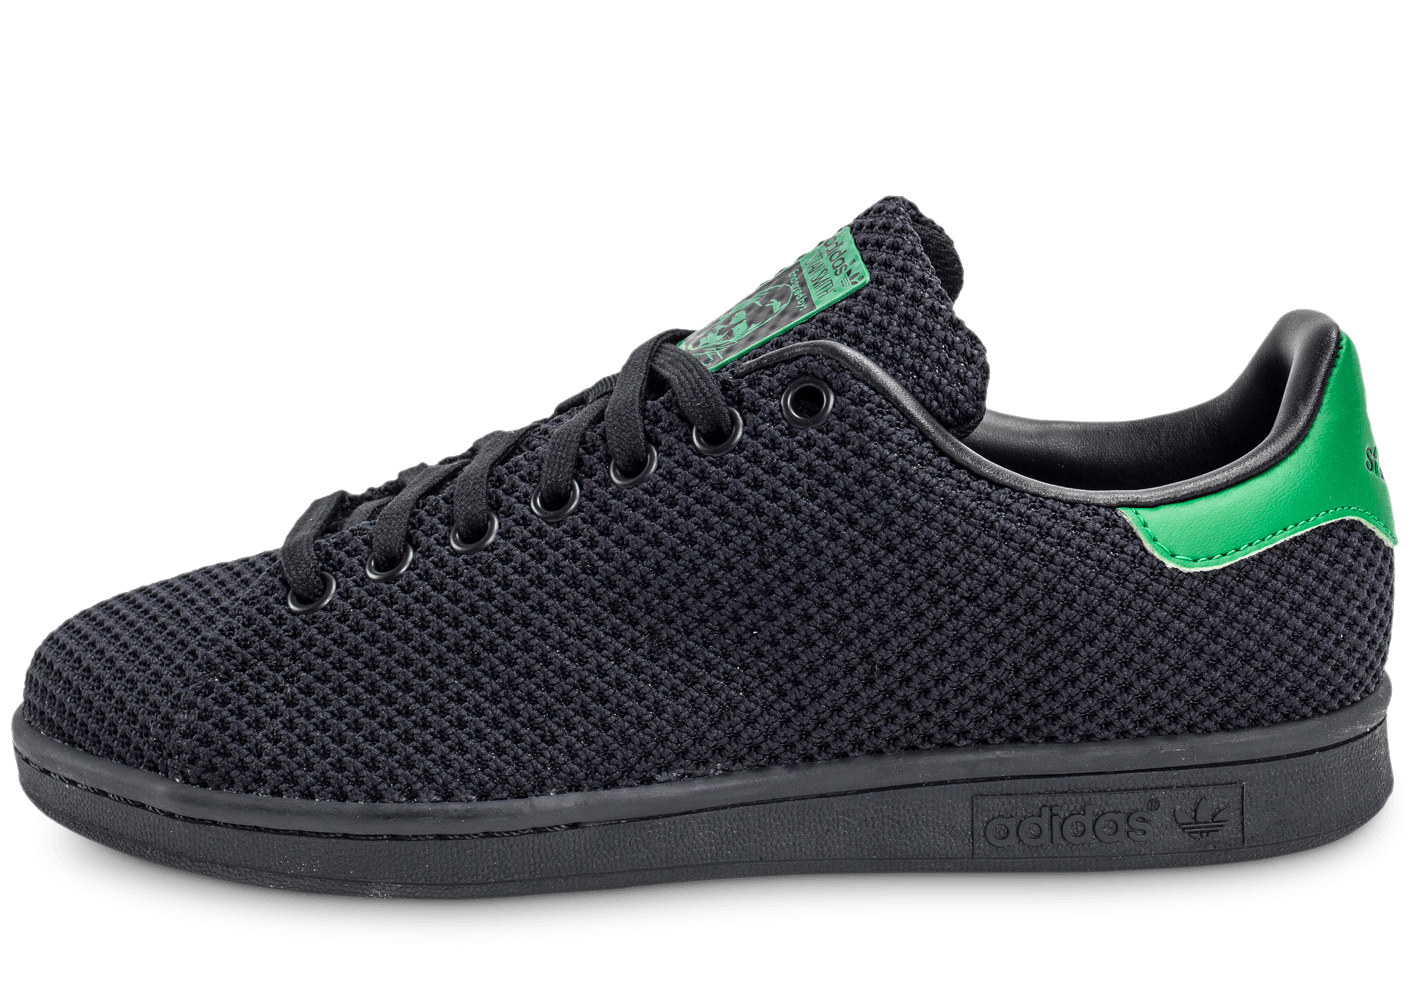 adidas stan smith circular knit noire chaussures homme chausport. Black Bedroom Furniture Sets. Home Design Ideas